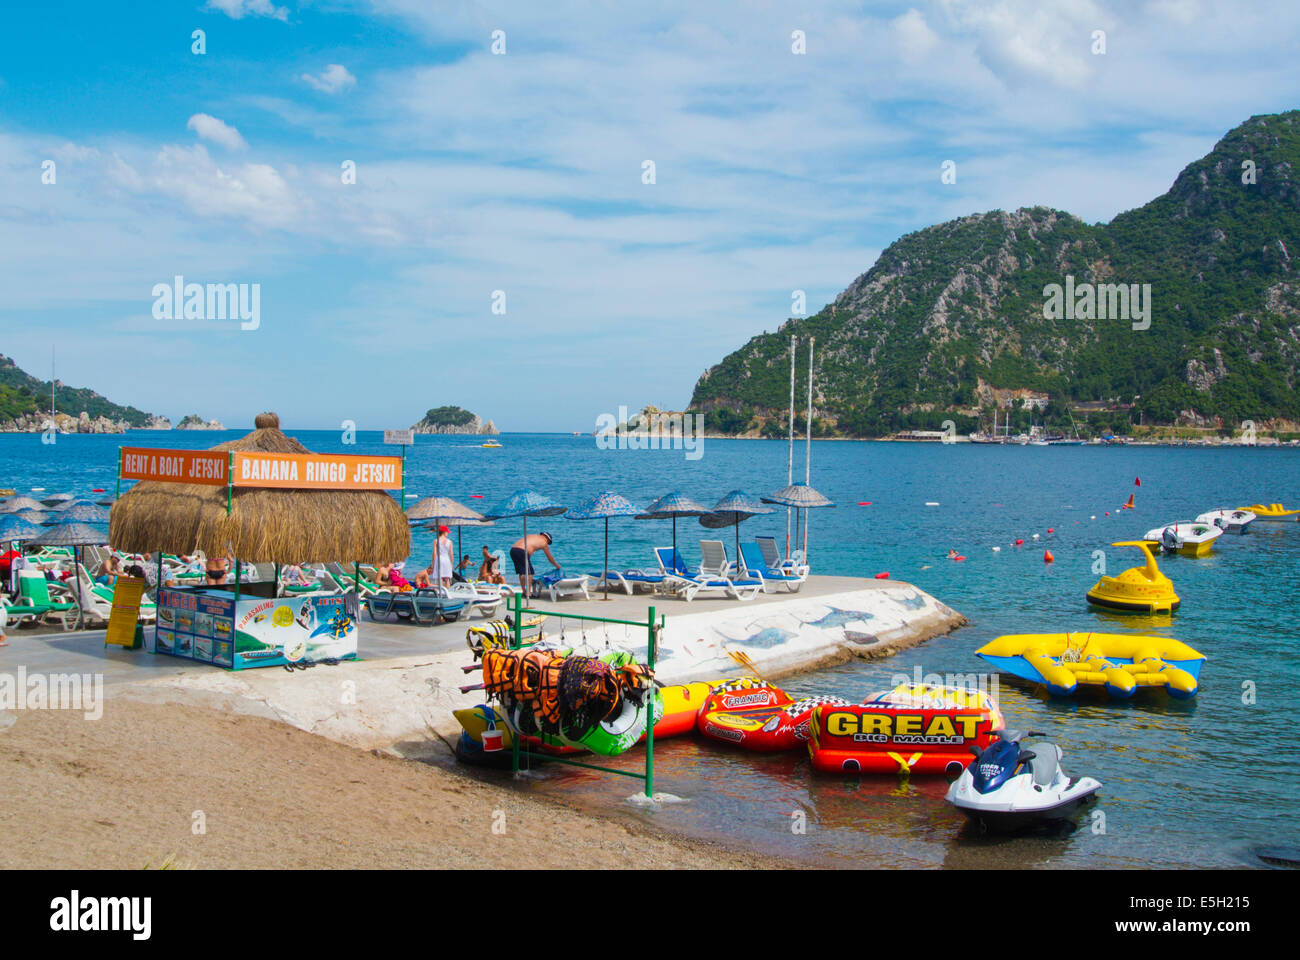 Watersports,jetskis and other equipment rental, beach, Icmeler resort, near Marmaris, Mugla province, Turkey, Asia - Stock Image